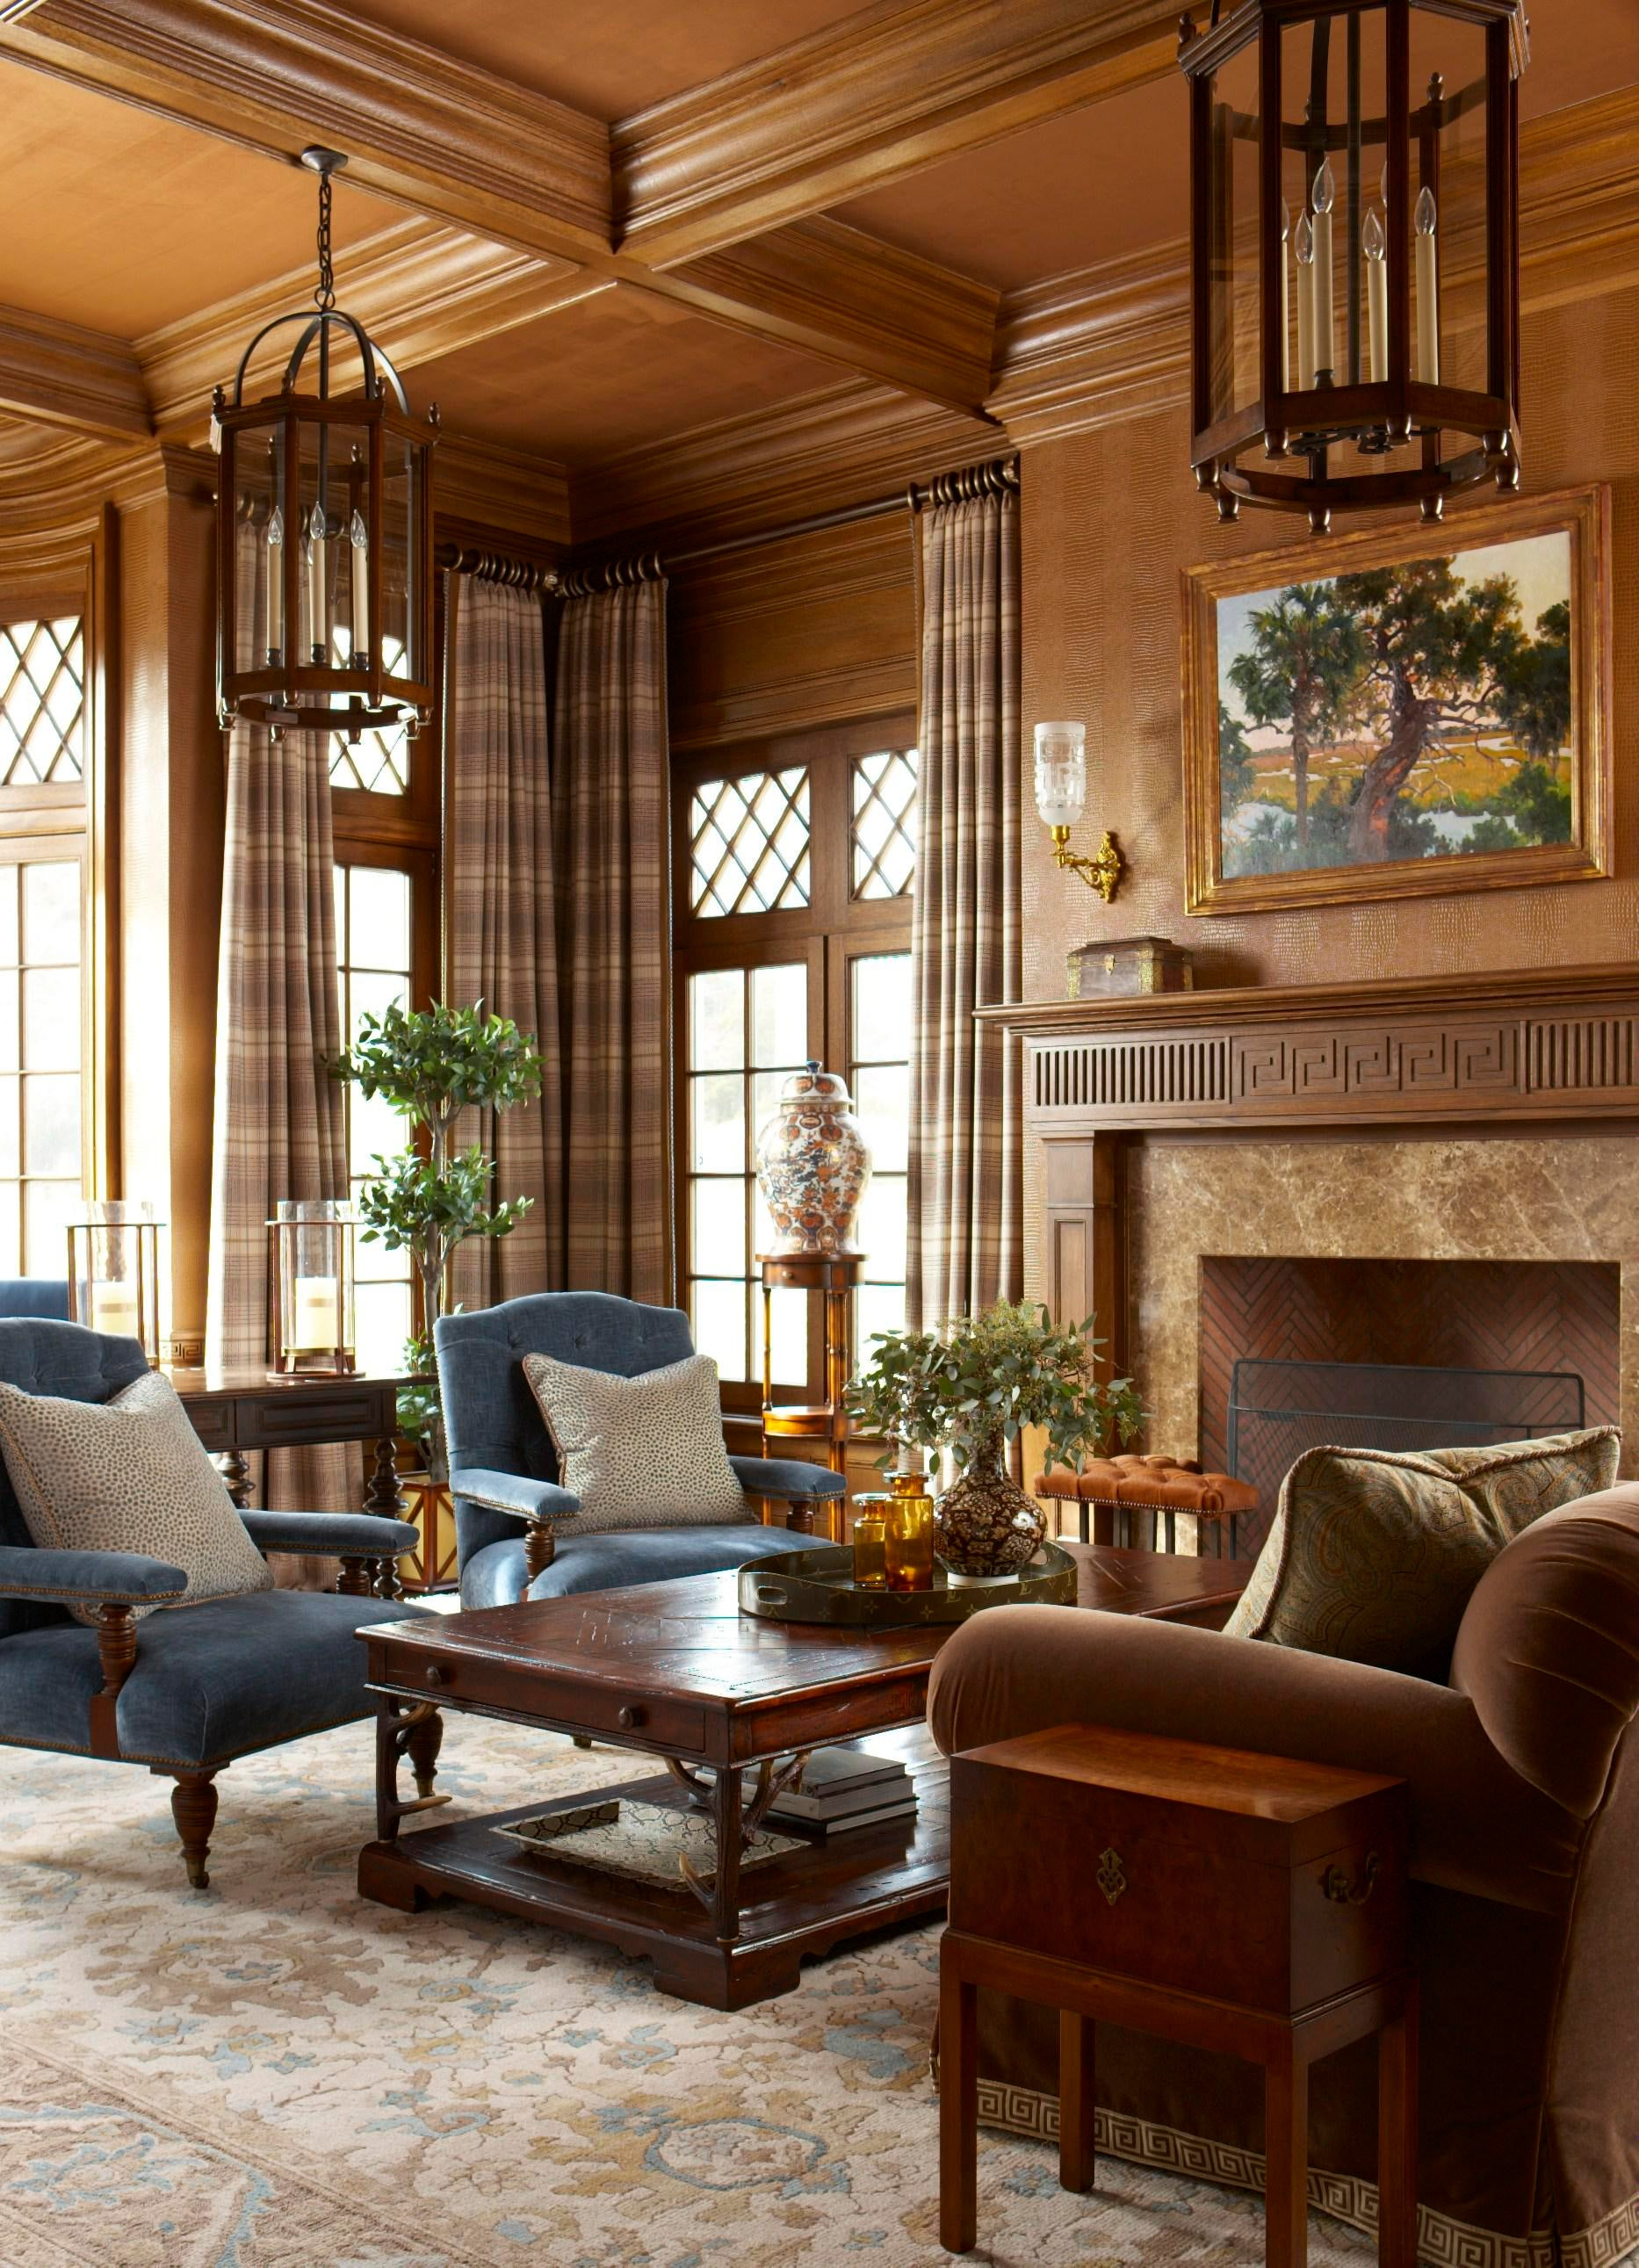 Study Library Living Home Office Contemporary TraditionalNeoclassical  Transitional By Rinfret Limited Interior Design U0026 Decoration LLC